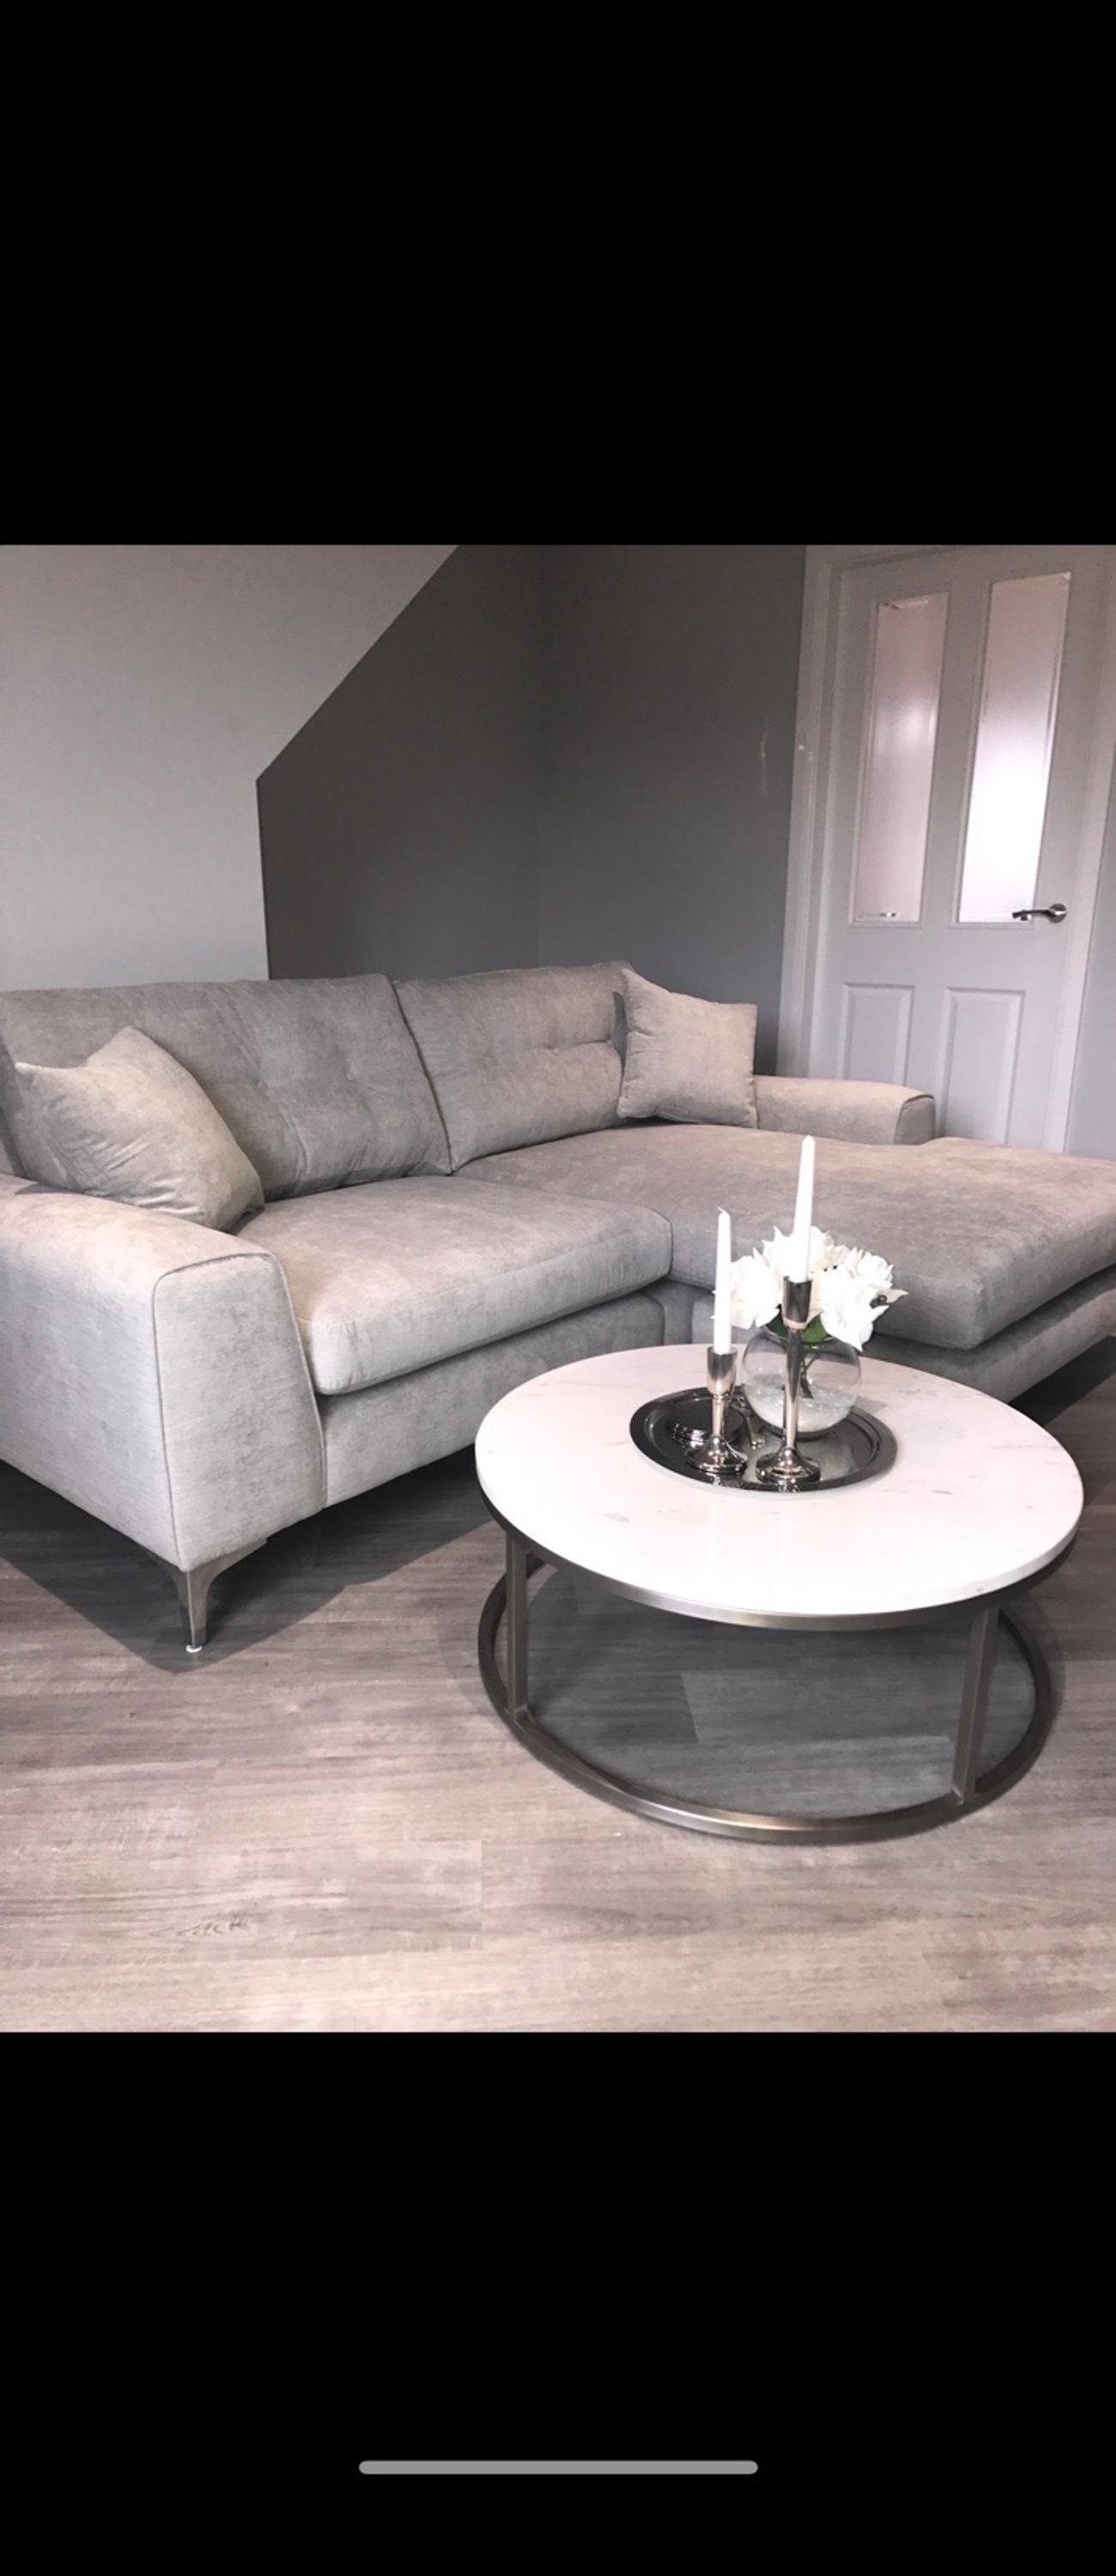 Grey Silver Corner Sofa Demure Sofology In Wn7 Wigan For 500 00 For Sale Shpock